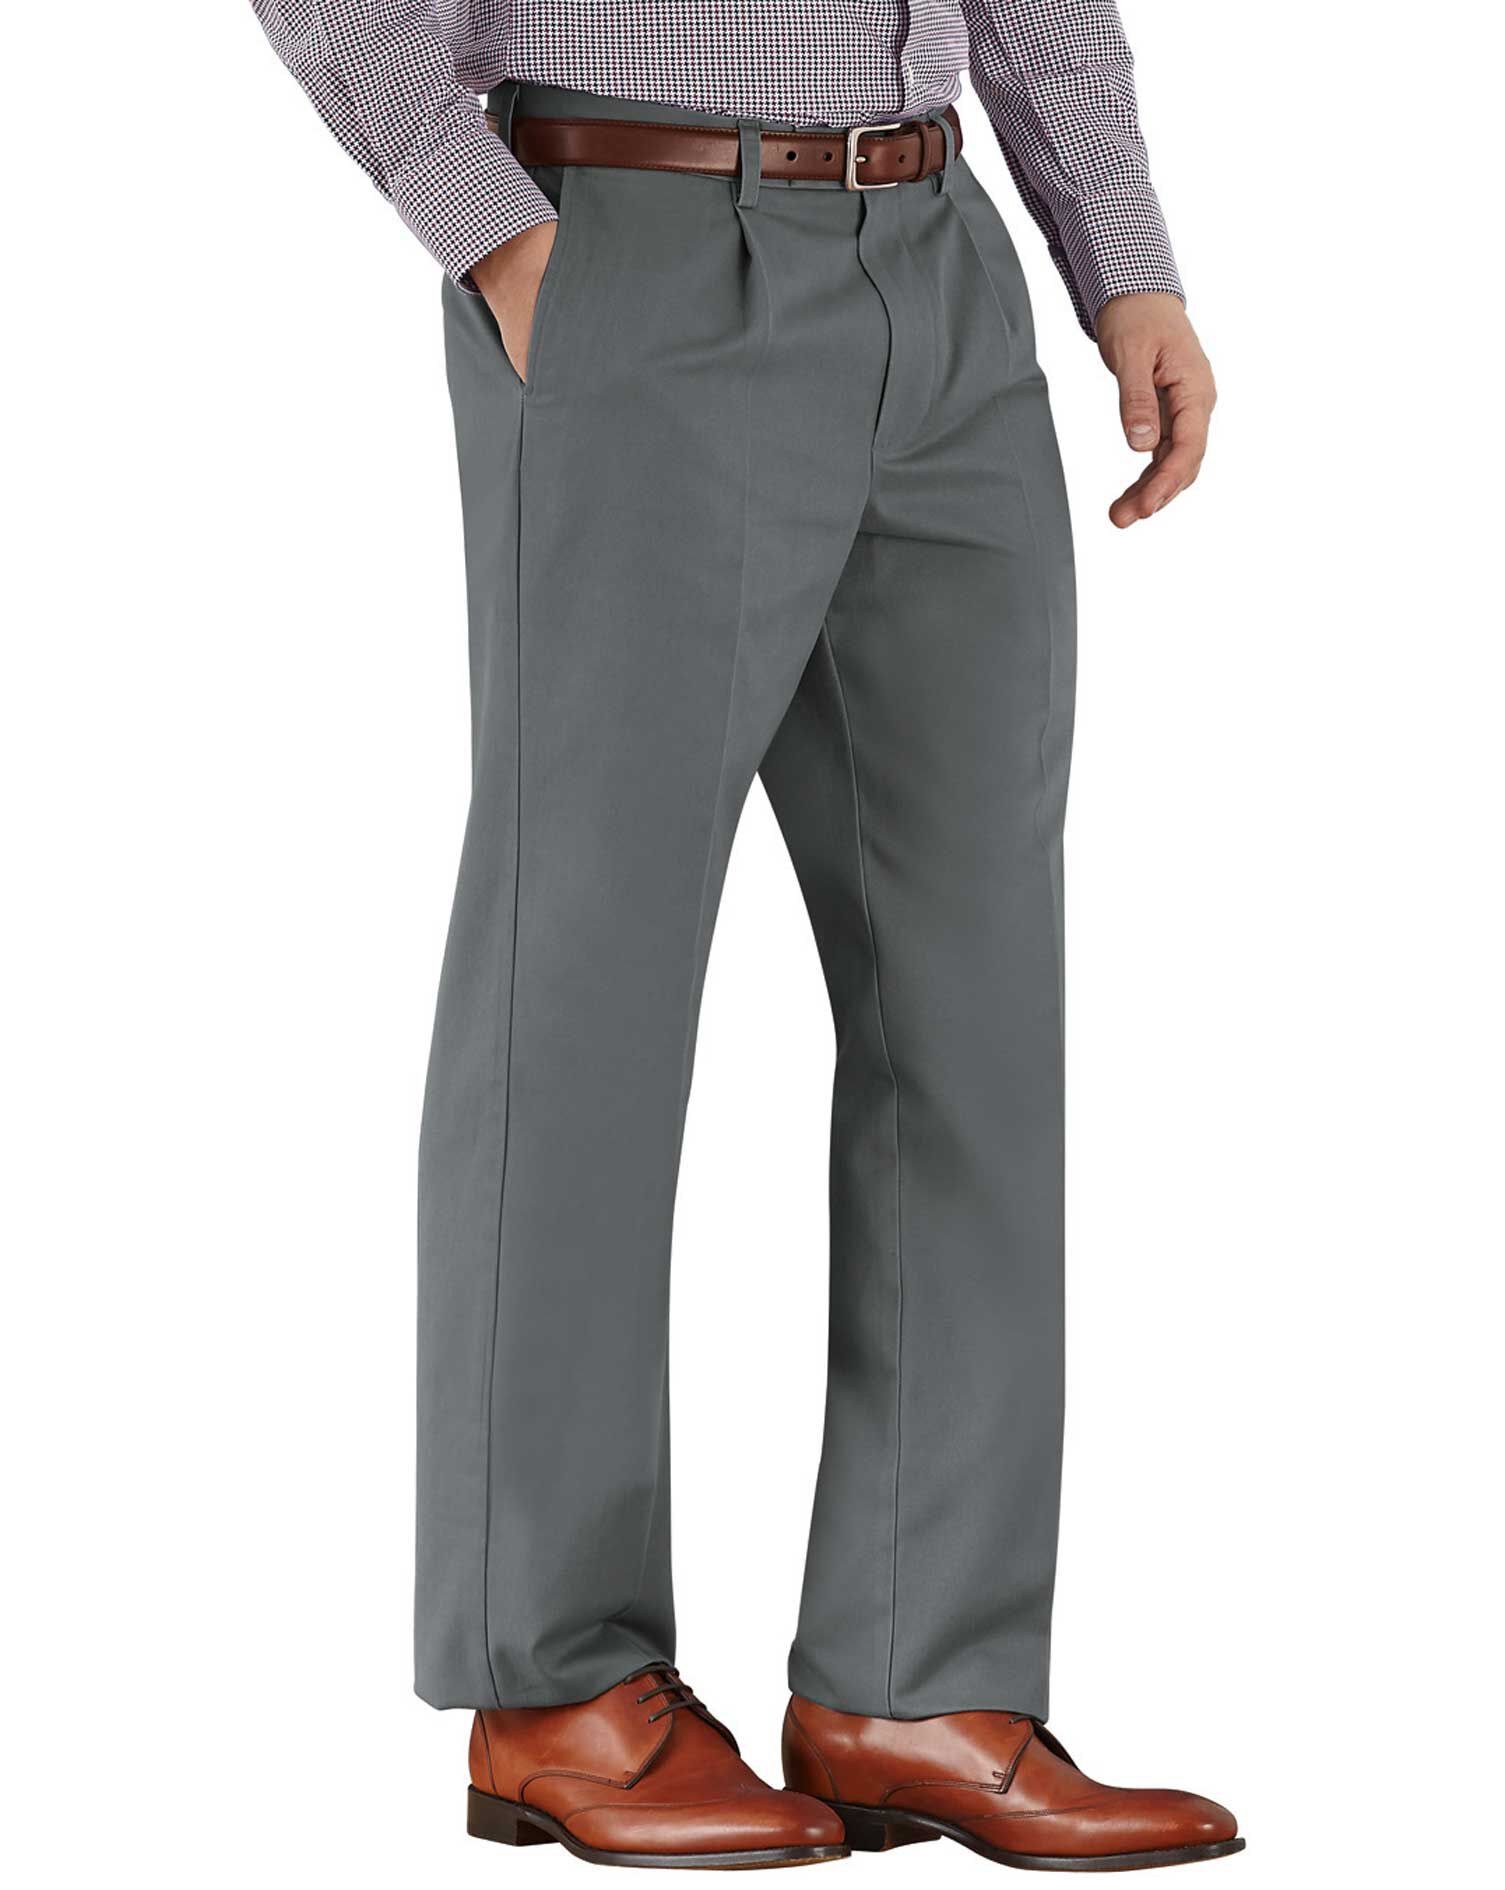 Grey Classic Fit Single Pleat Non-Iron Cotton Chino Trousers Size W36 L34 by Charles Tyrwhitt